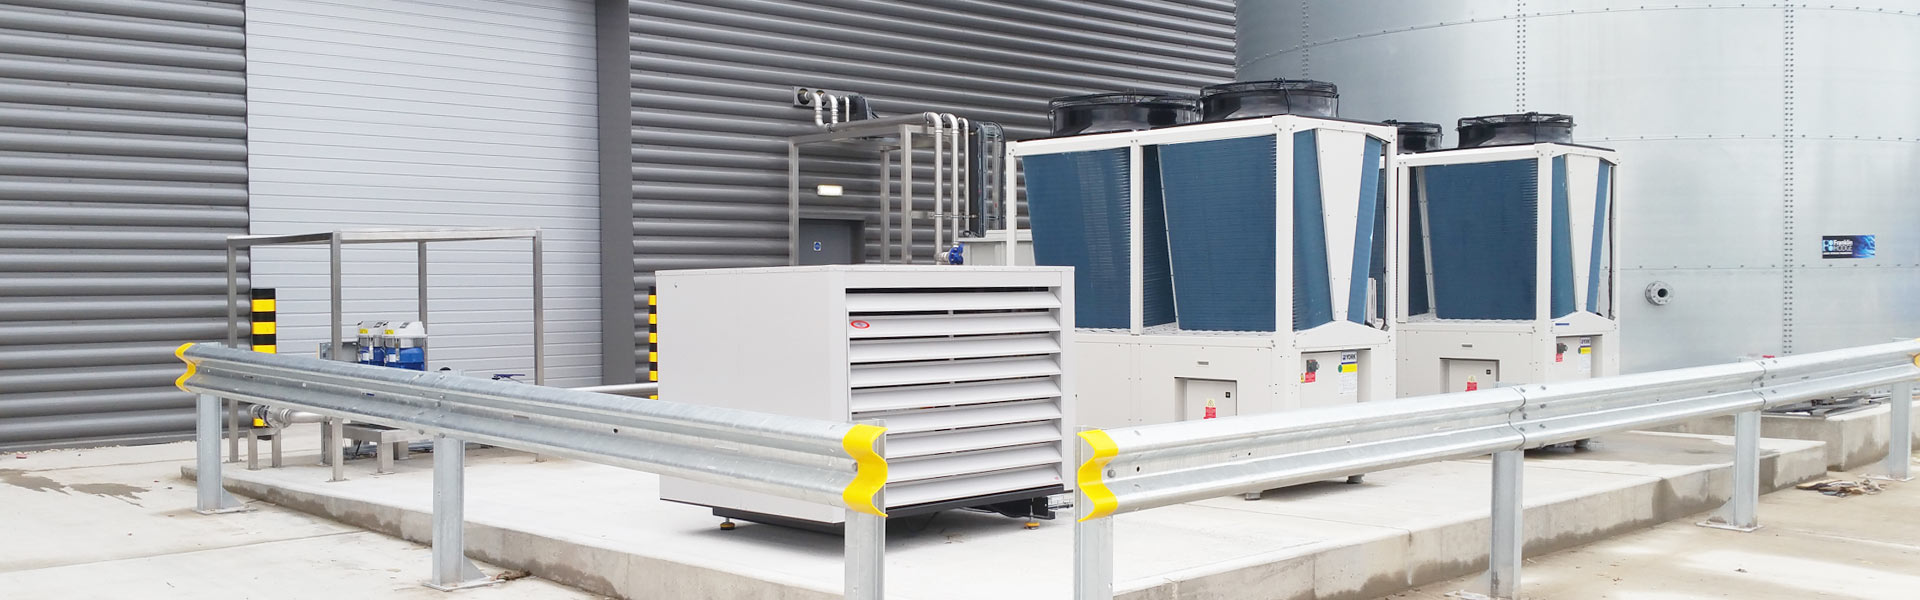 Process engineering and chiller expertise